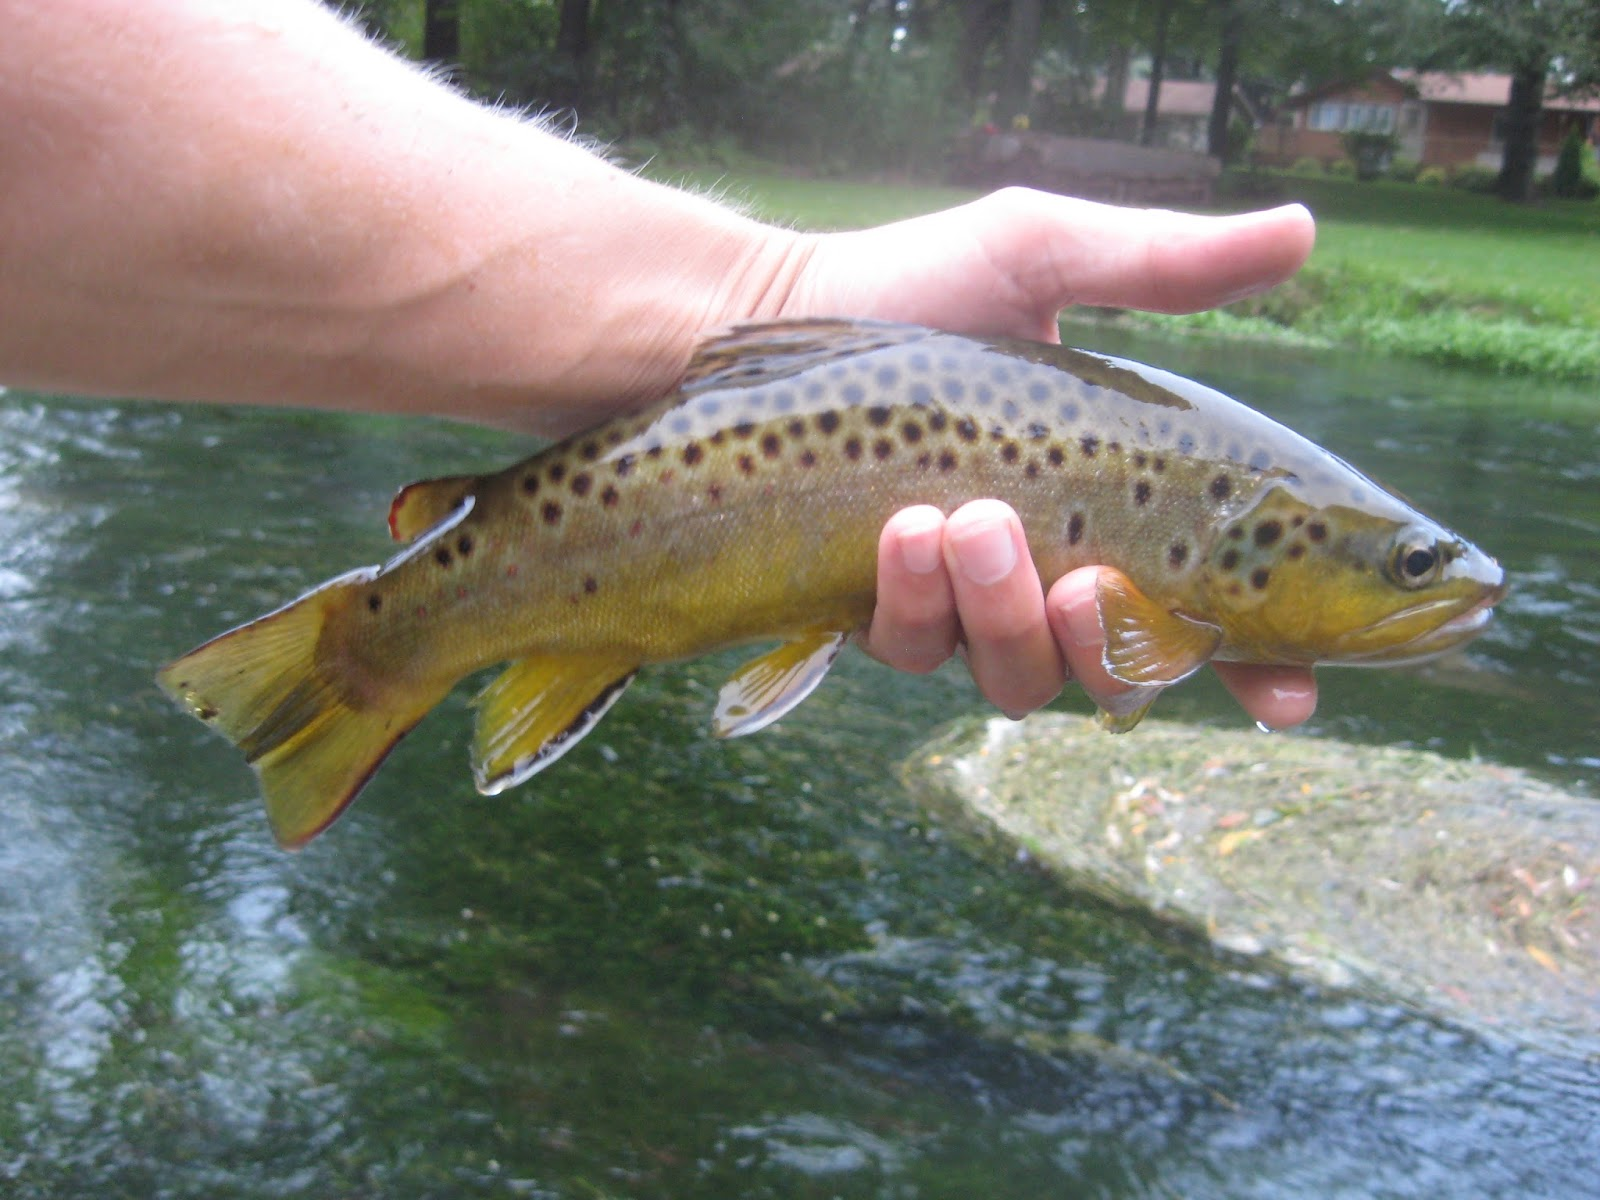 Minnesota driftless fly fishing trip report trout on the for Driftless fly fishing